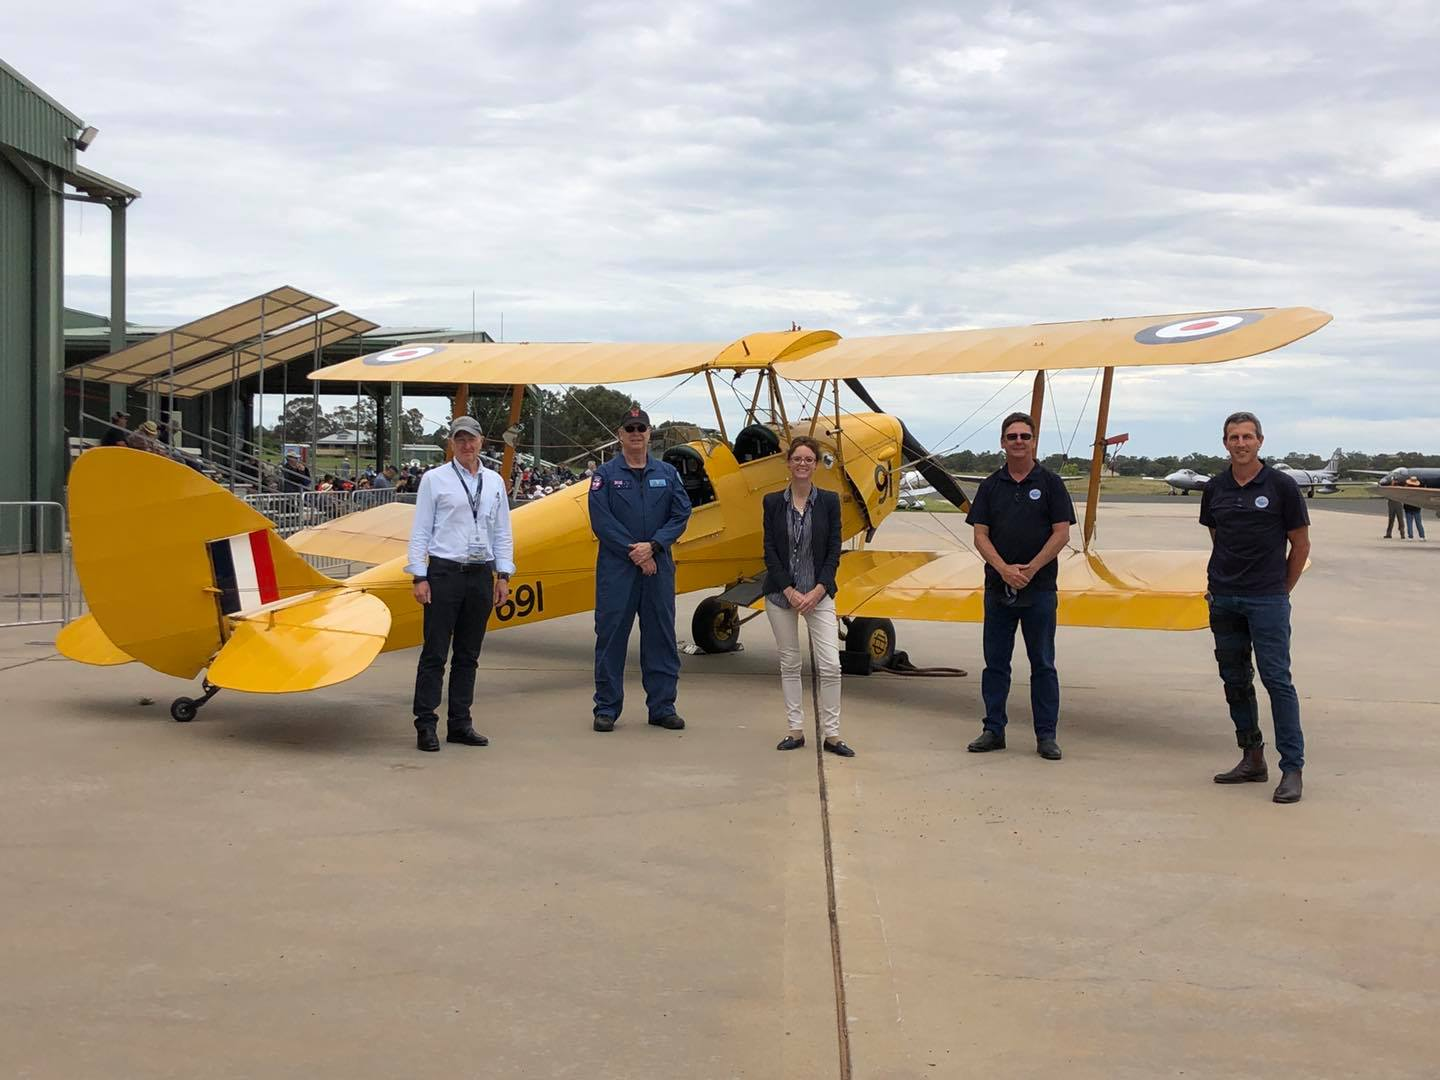 Steph Cooke stands in front of a bi plane with four men.